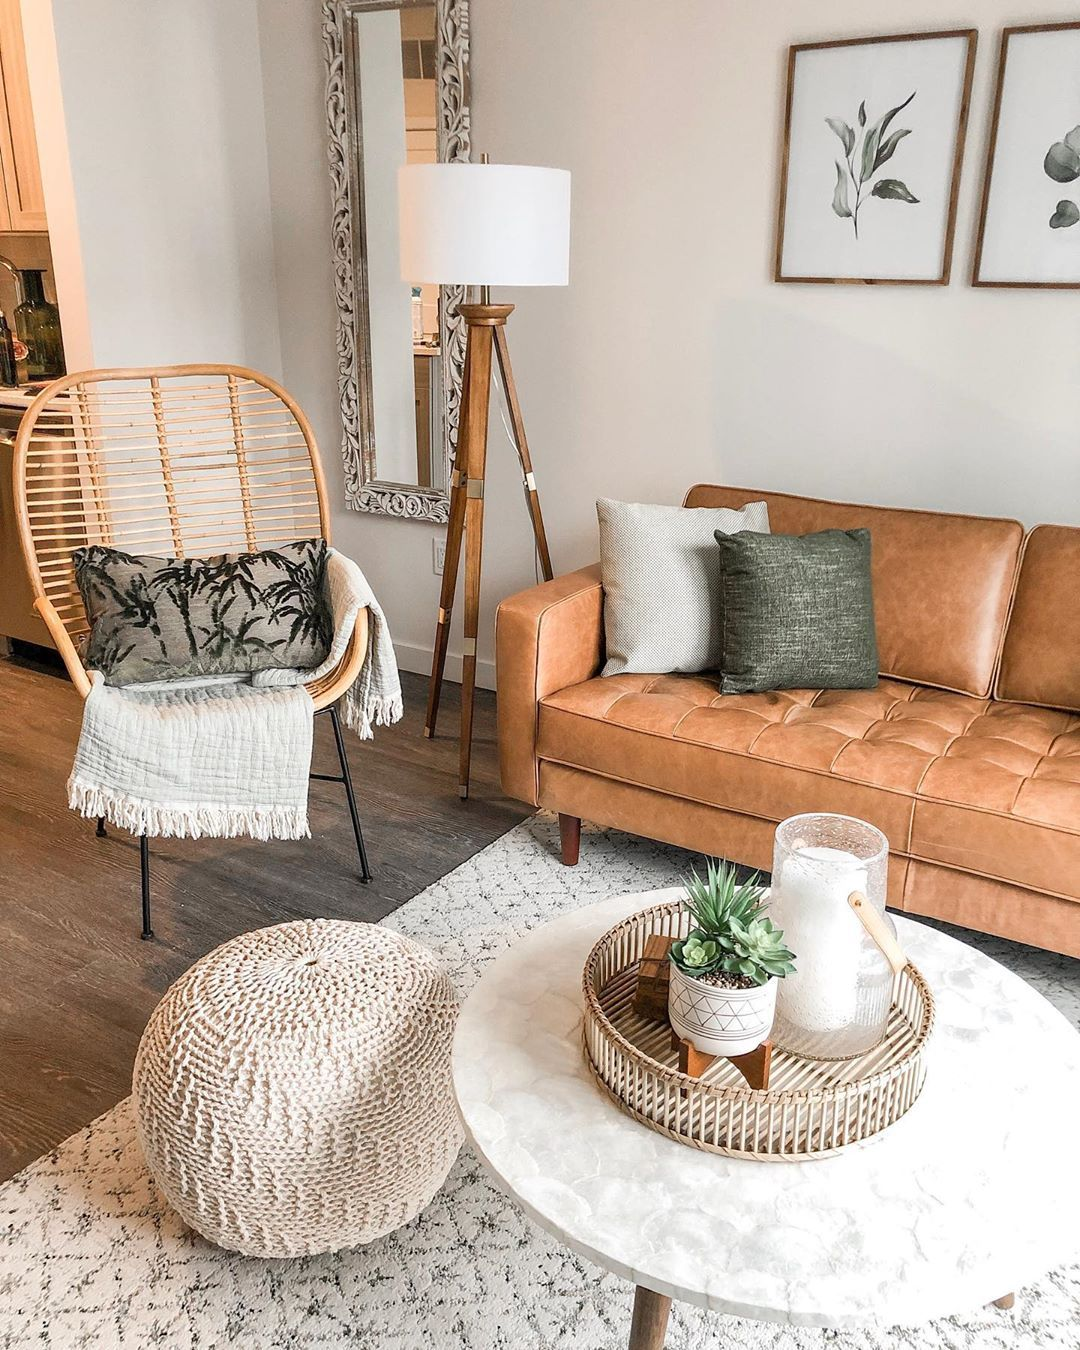 Natural Tones And Textures Make This Airy Space The Perfect Place To Relax This Weekend Thanks For Sha Living Room Inspiration Room Inspiration Home Decor #textures #for #living #room